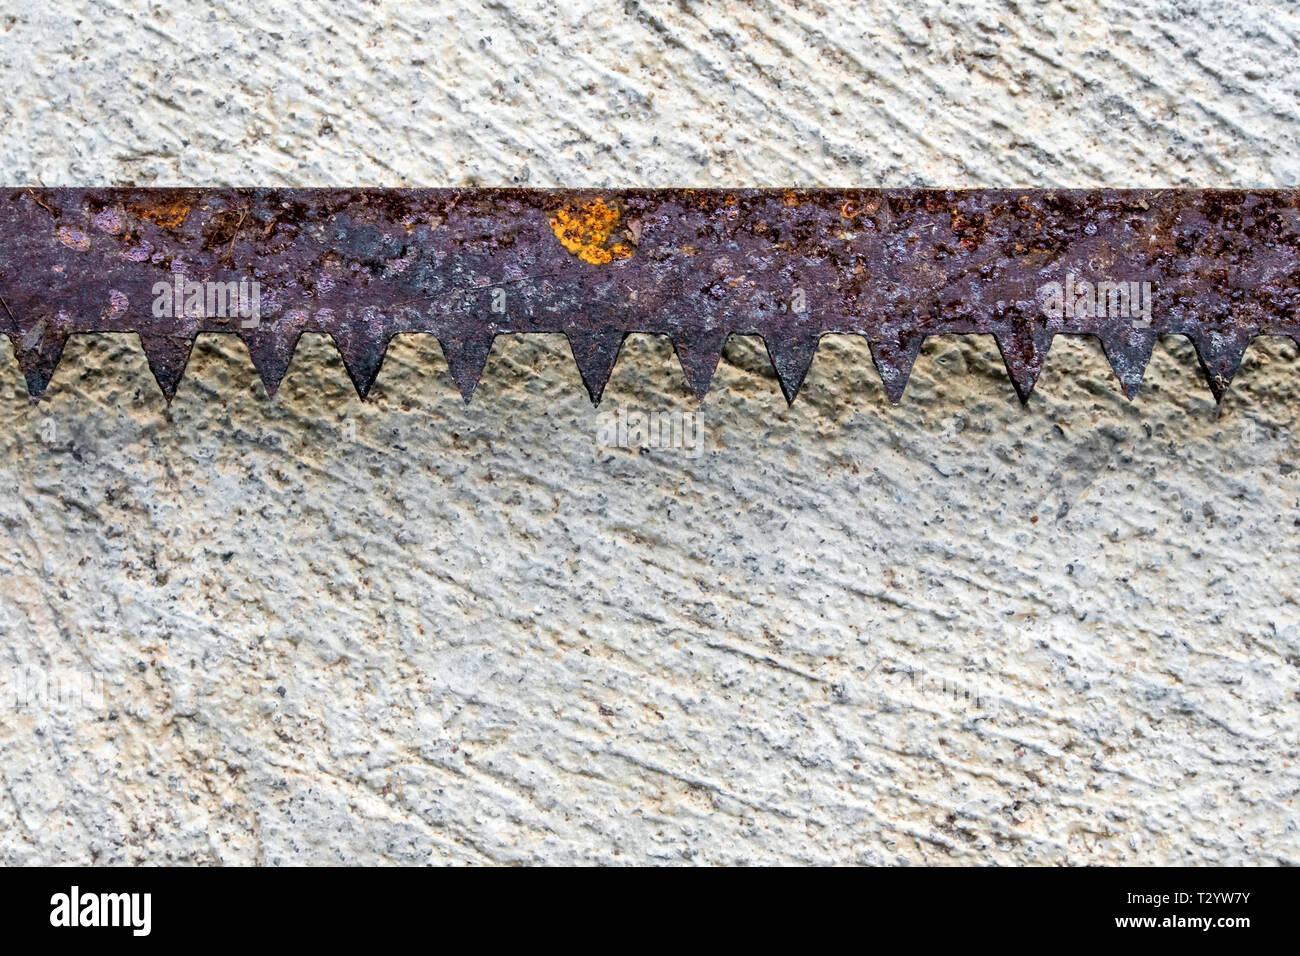 The sharpness of saw blade is old and rusty On the concrete floor - Stock Image